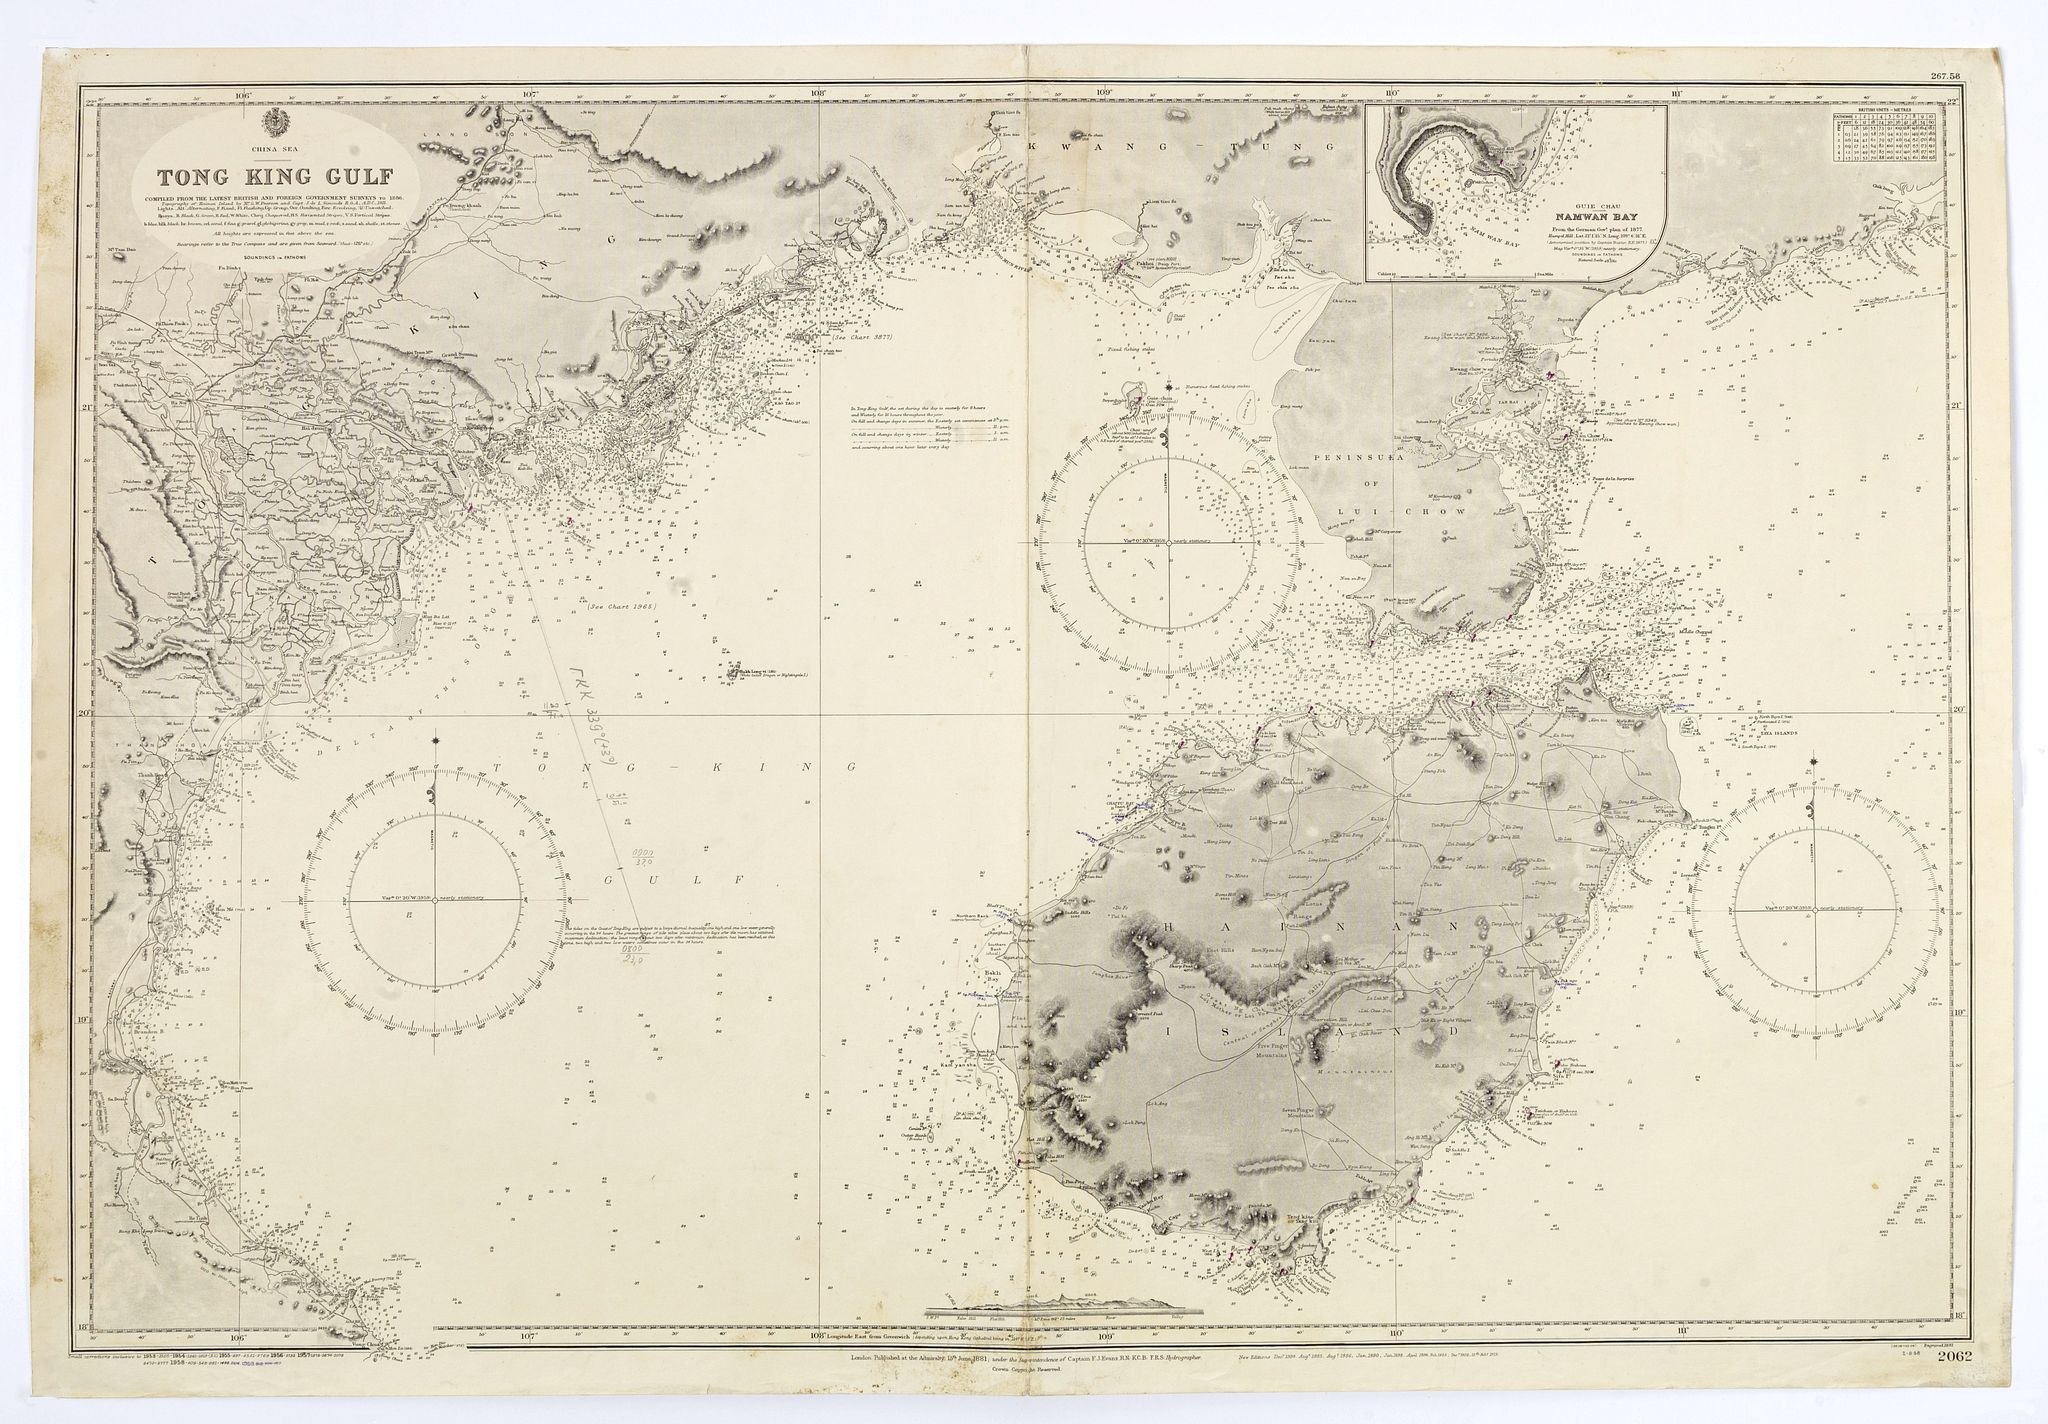 HYDROGRAPHIC OFFICE -  China sea. Tong King Gulf Compiled from the latest British and Foreign Government surveys to 1886. . .